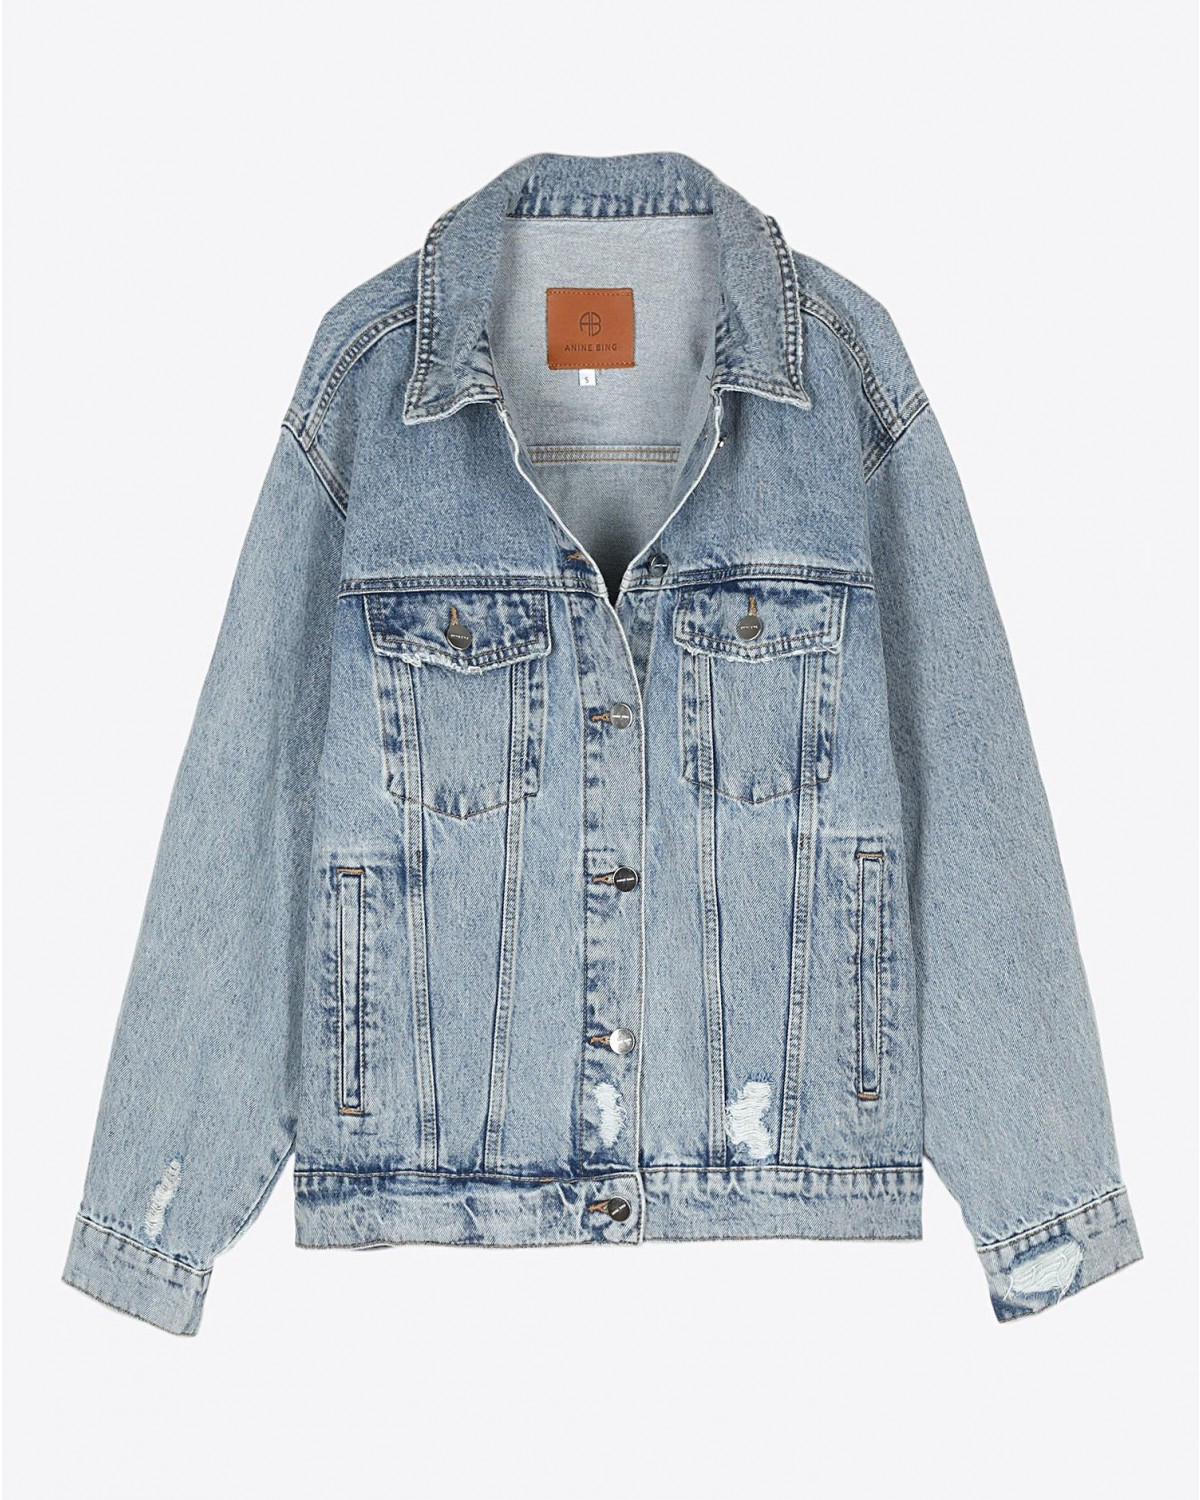 Anine Bing Rory Denim Jacket - Vintage Blue